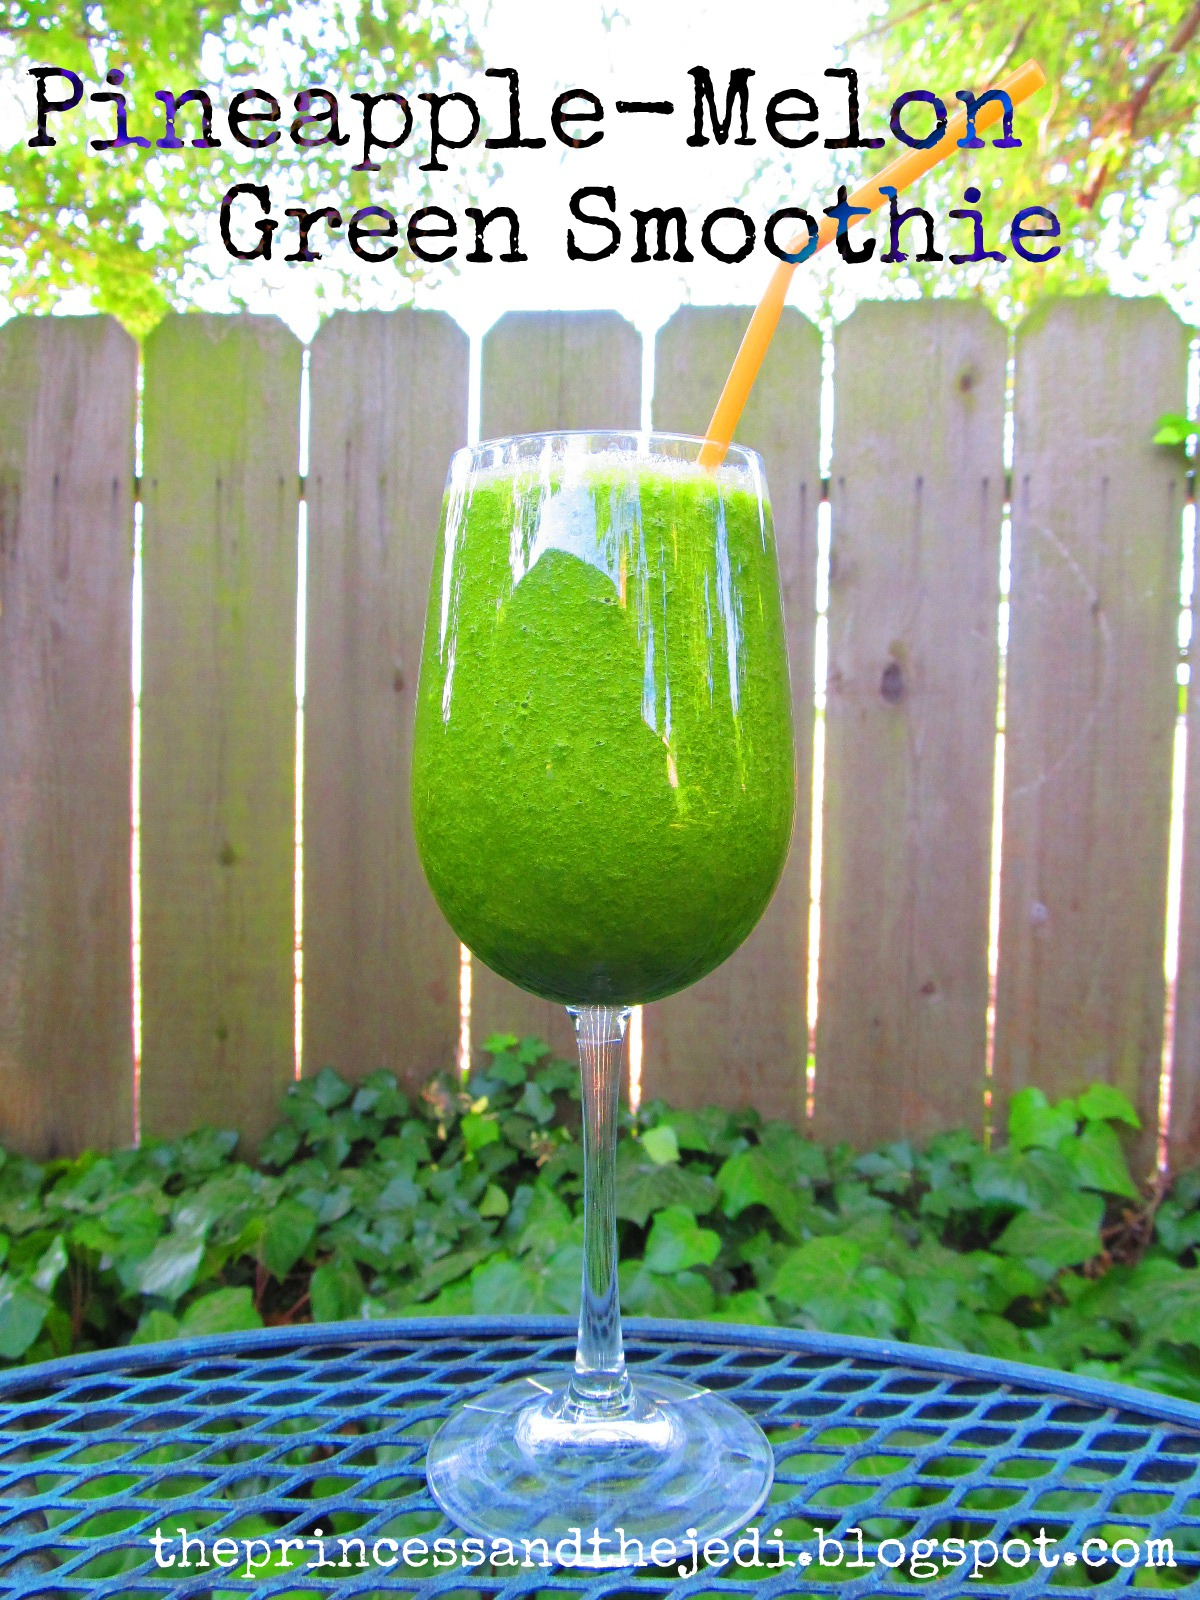 Pineapple-Melon Green Smoothie